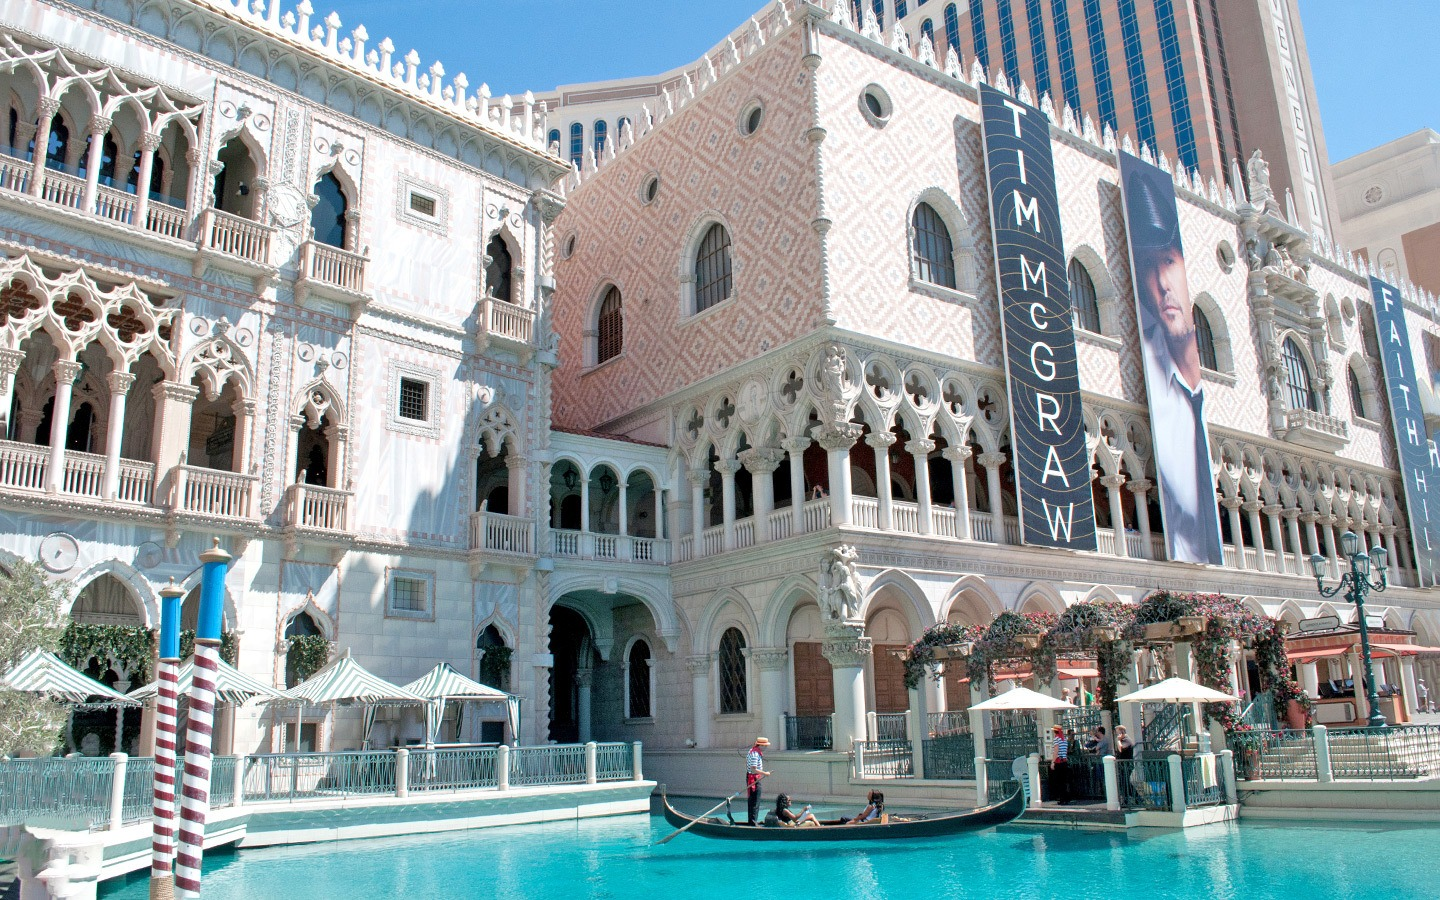 The exterior of the Venetian casino in Las Vegas, Nevada USA